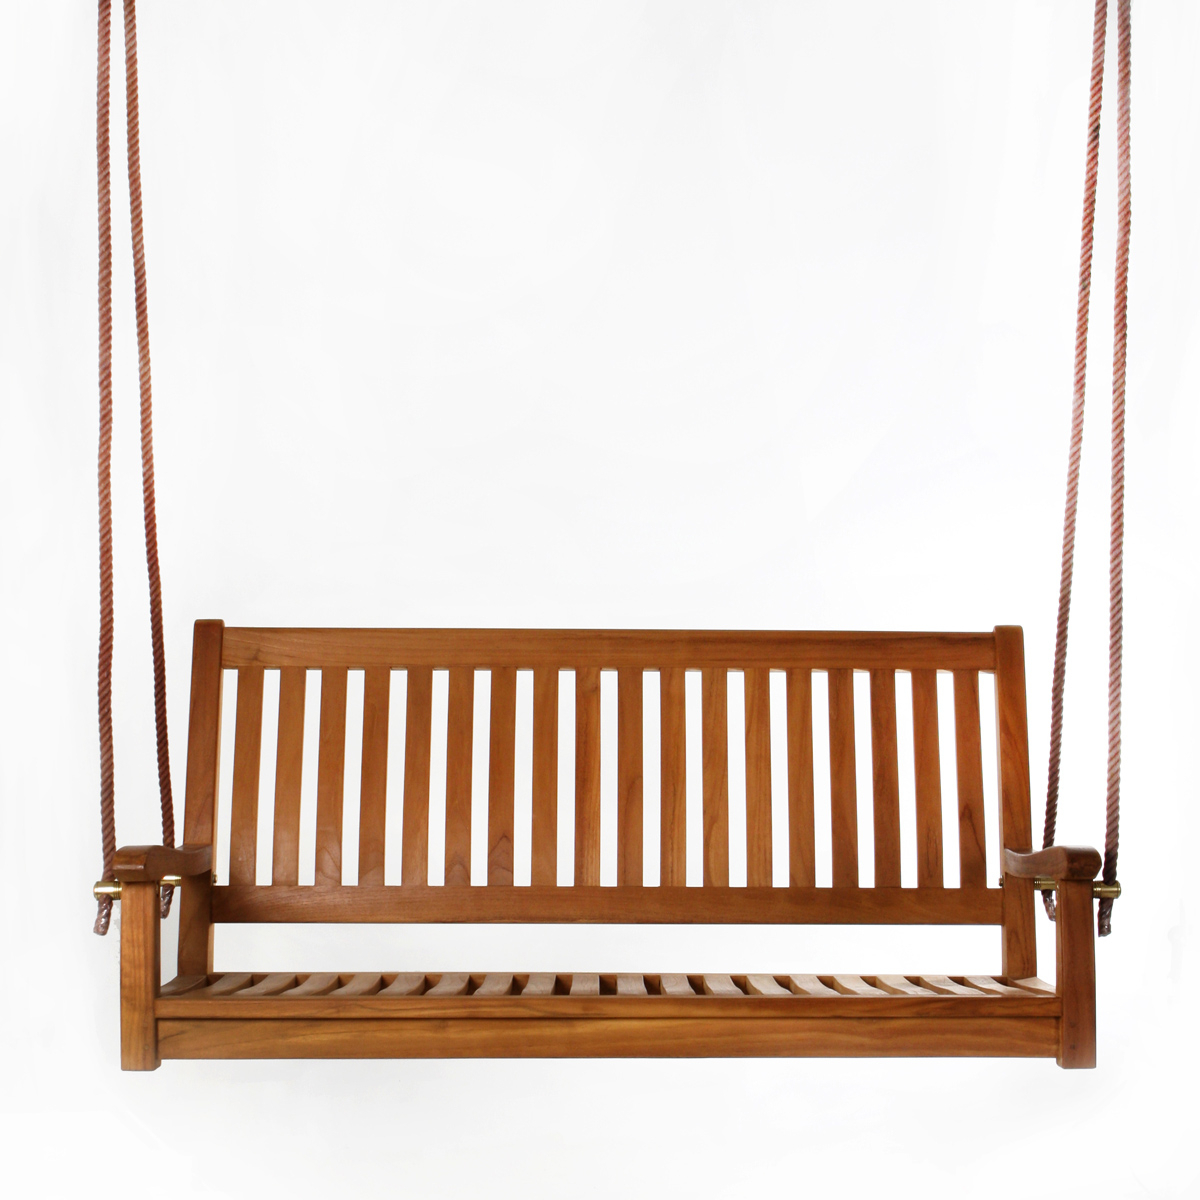 All Things Cedar 26 In X 54 In Brown Teak Swing In 2 Person Light Teak Oil Wood Outdoor Swings (View 23 of 25)